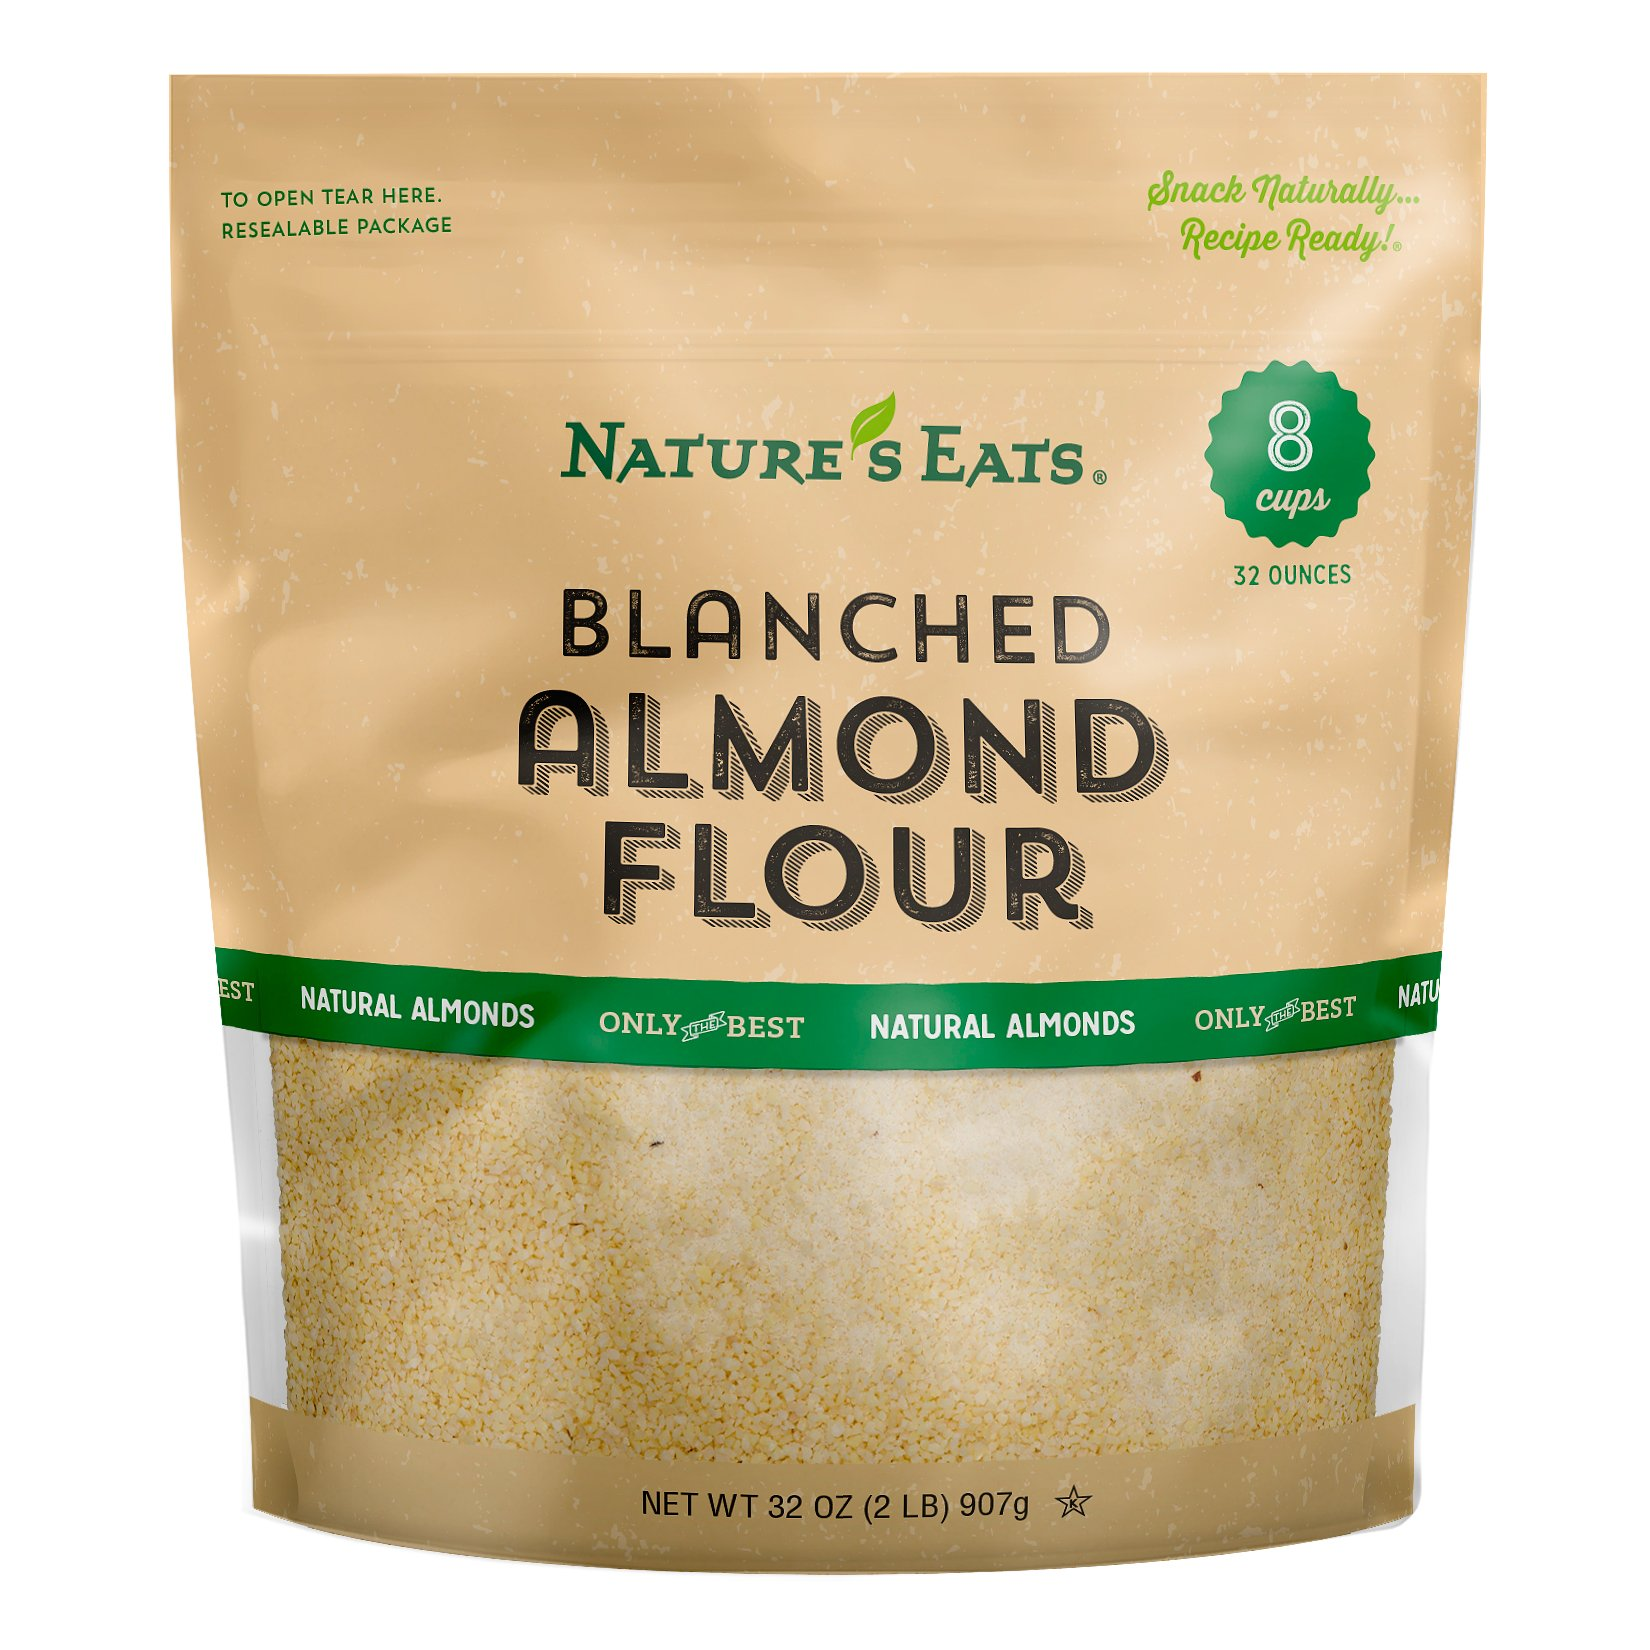 Nature's Eats Blanched Almond Flour, 32 Ounce by Nature's Eats